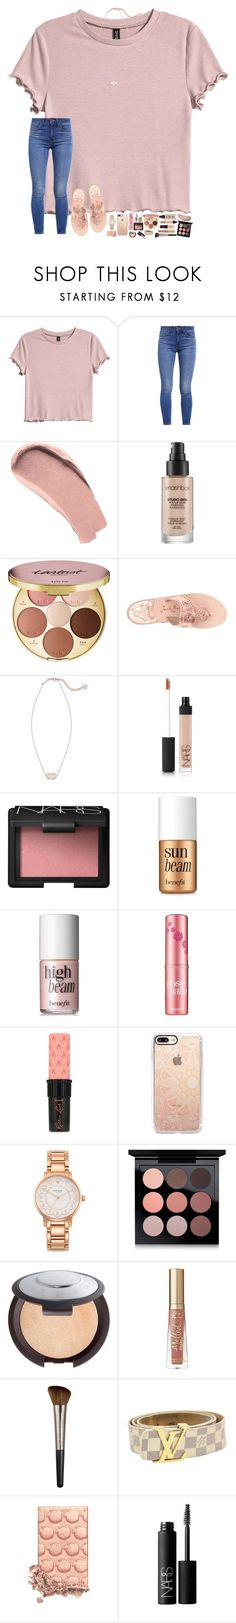 """happy valentines day "" by hopemarlee ❤ liked on Polyvore featuring H&M, Levi's, Burberry, Smashbox, tarte, Jack Rogers, Kendra Scott, NARS Cosmetics, Benefit and Casetify"